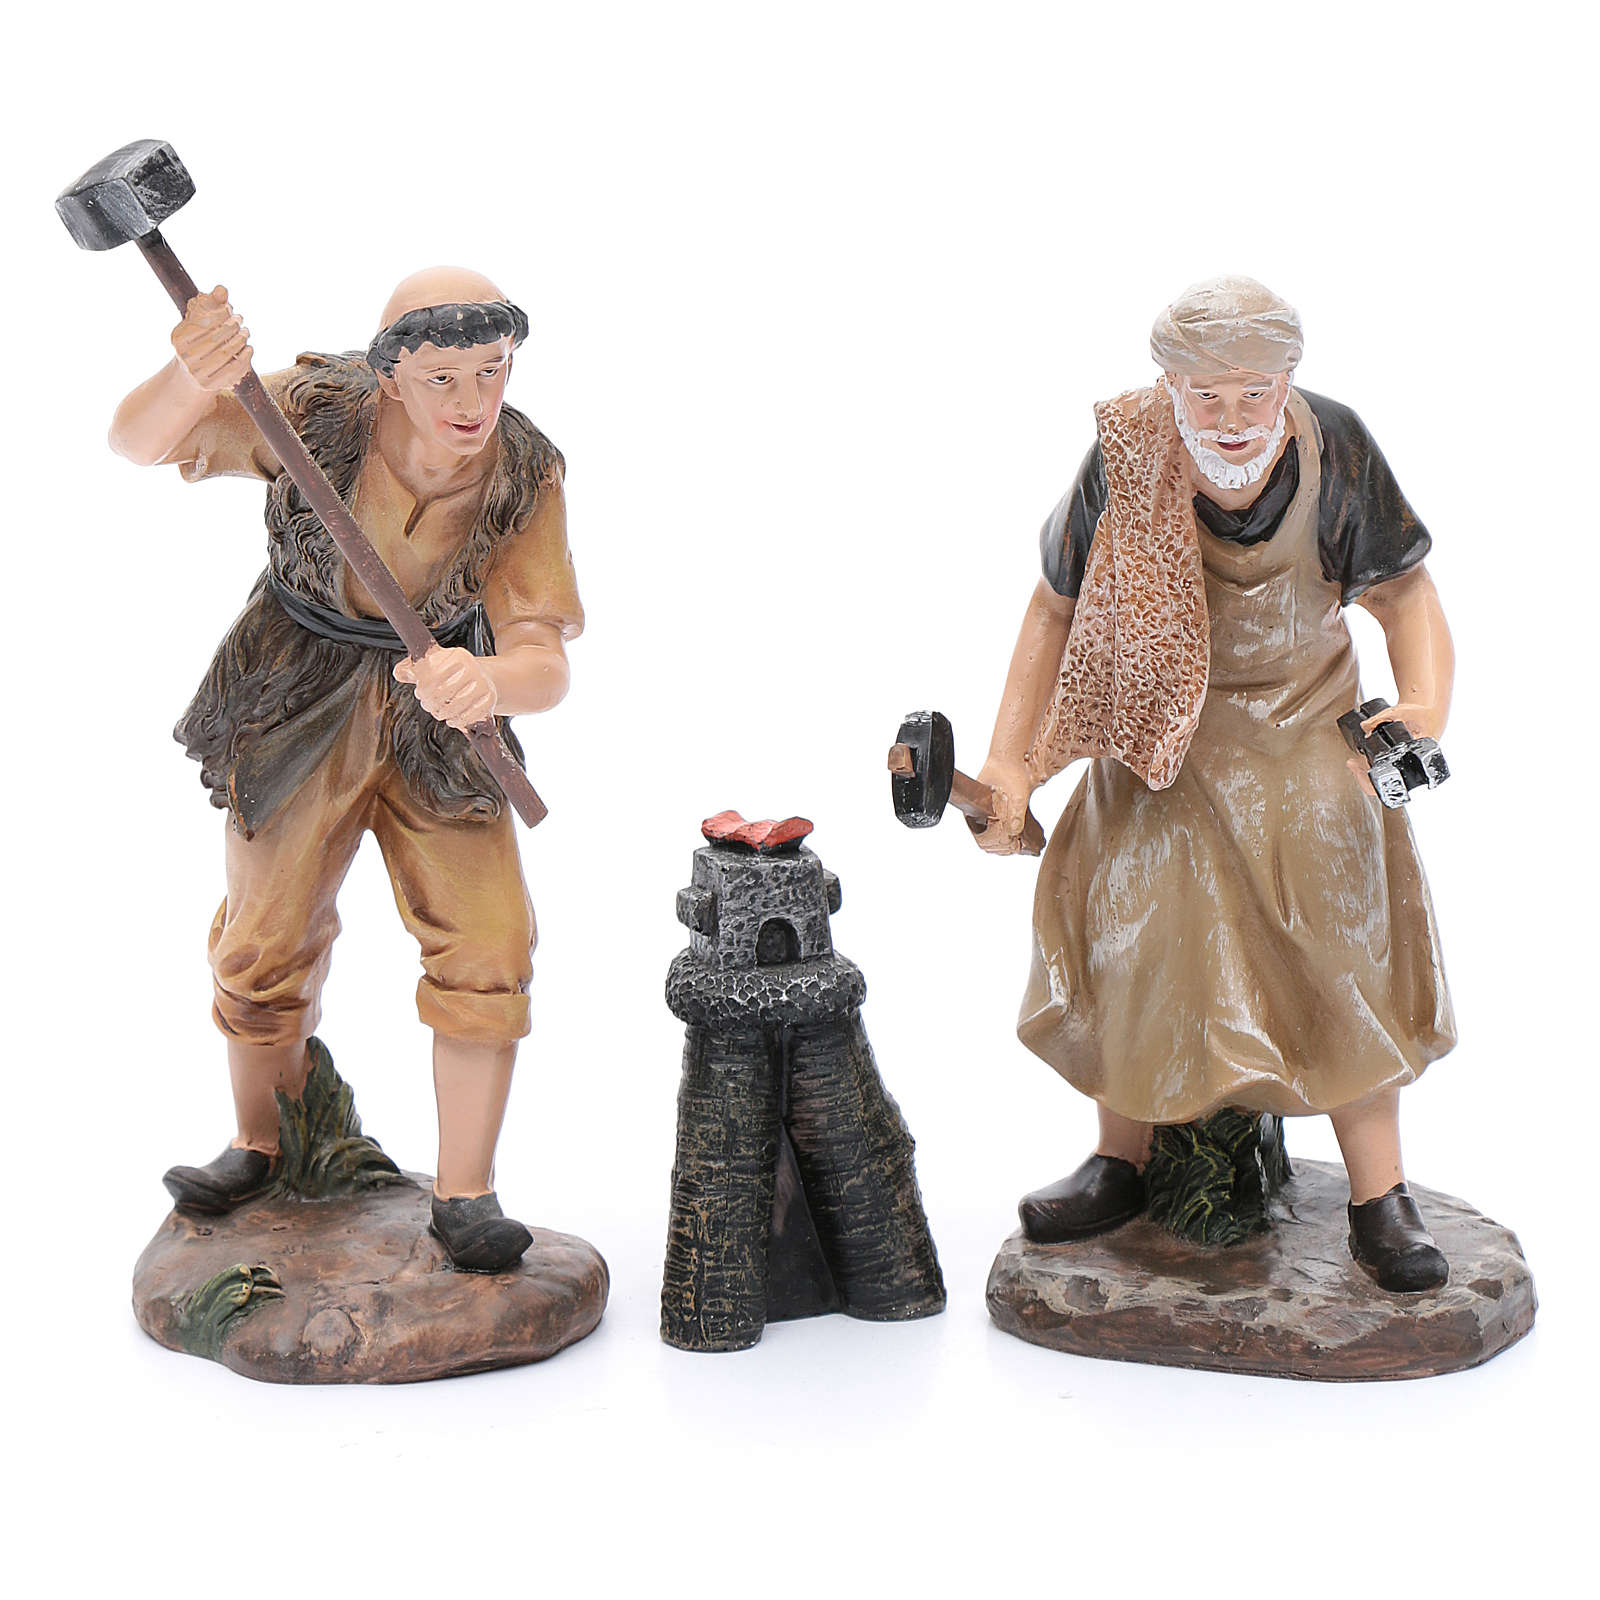 Nativity scene statues blacksmiths with forge 20 cm 3 pieces set 3